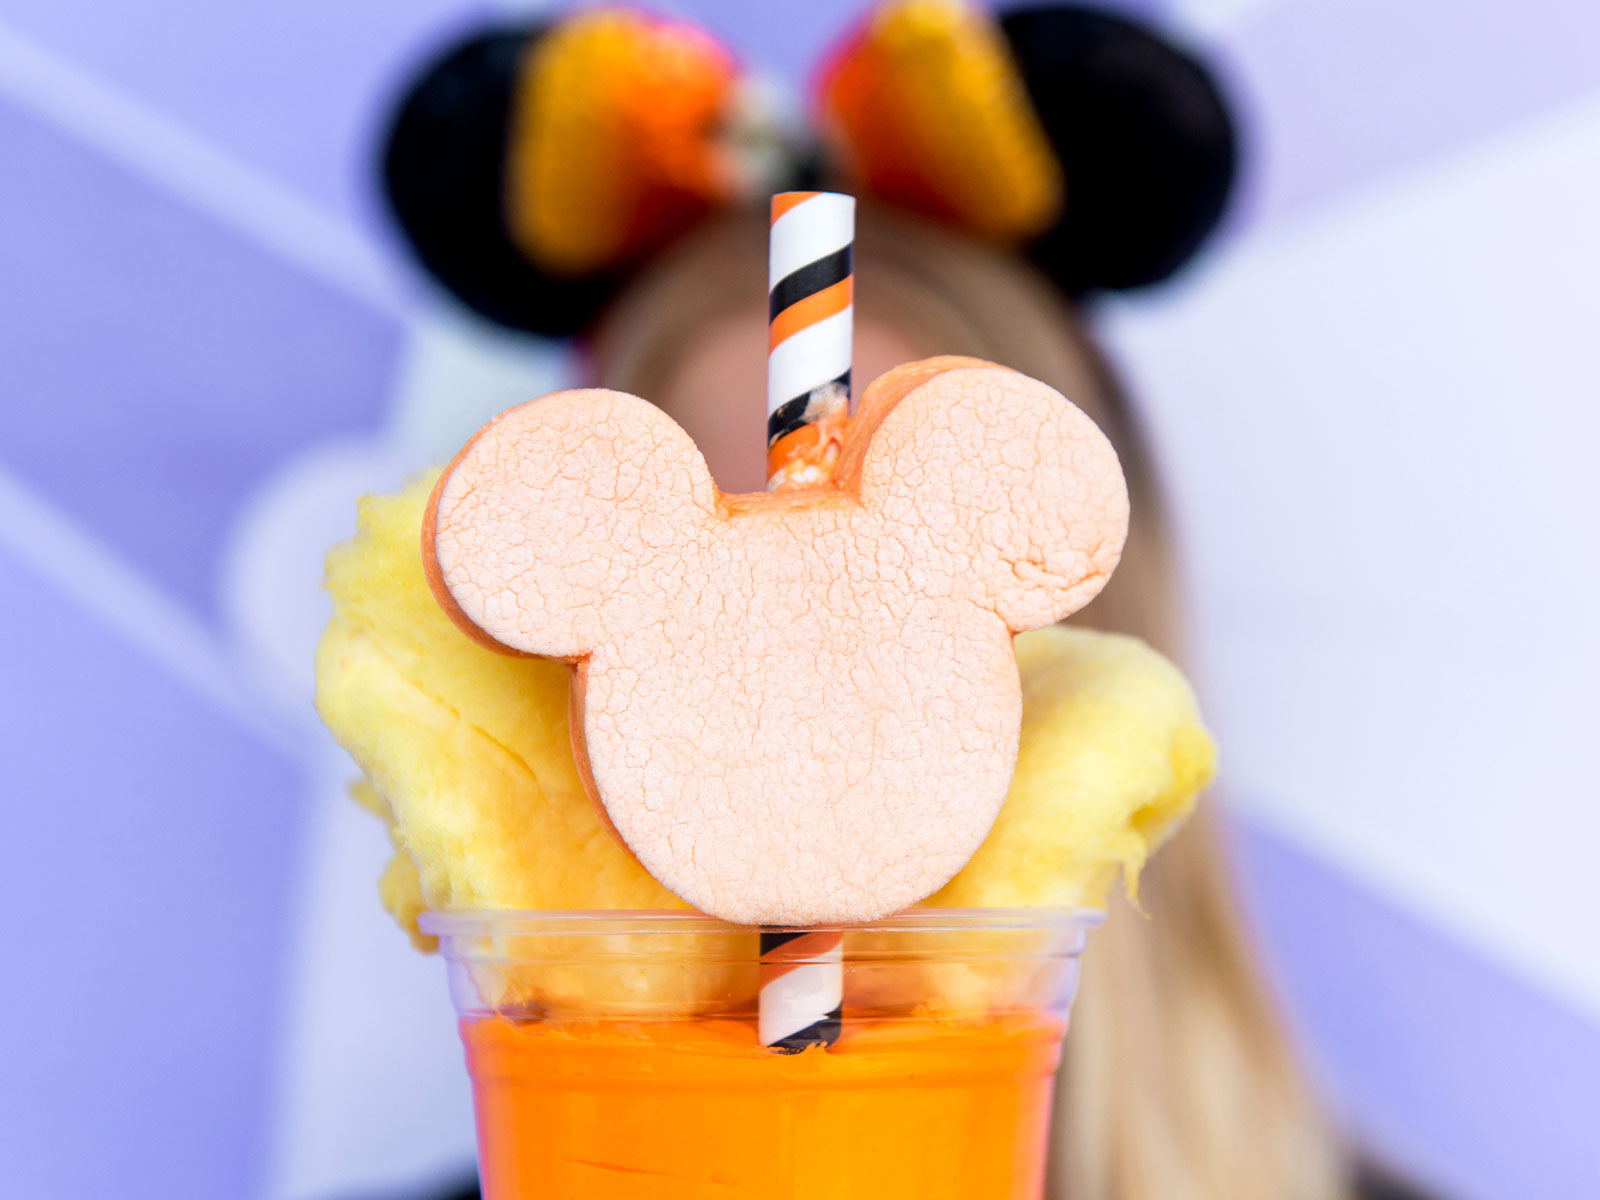 The Must-Try Treats at Mickey's Not-So-Scary Halloween Party This Year